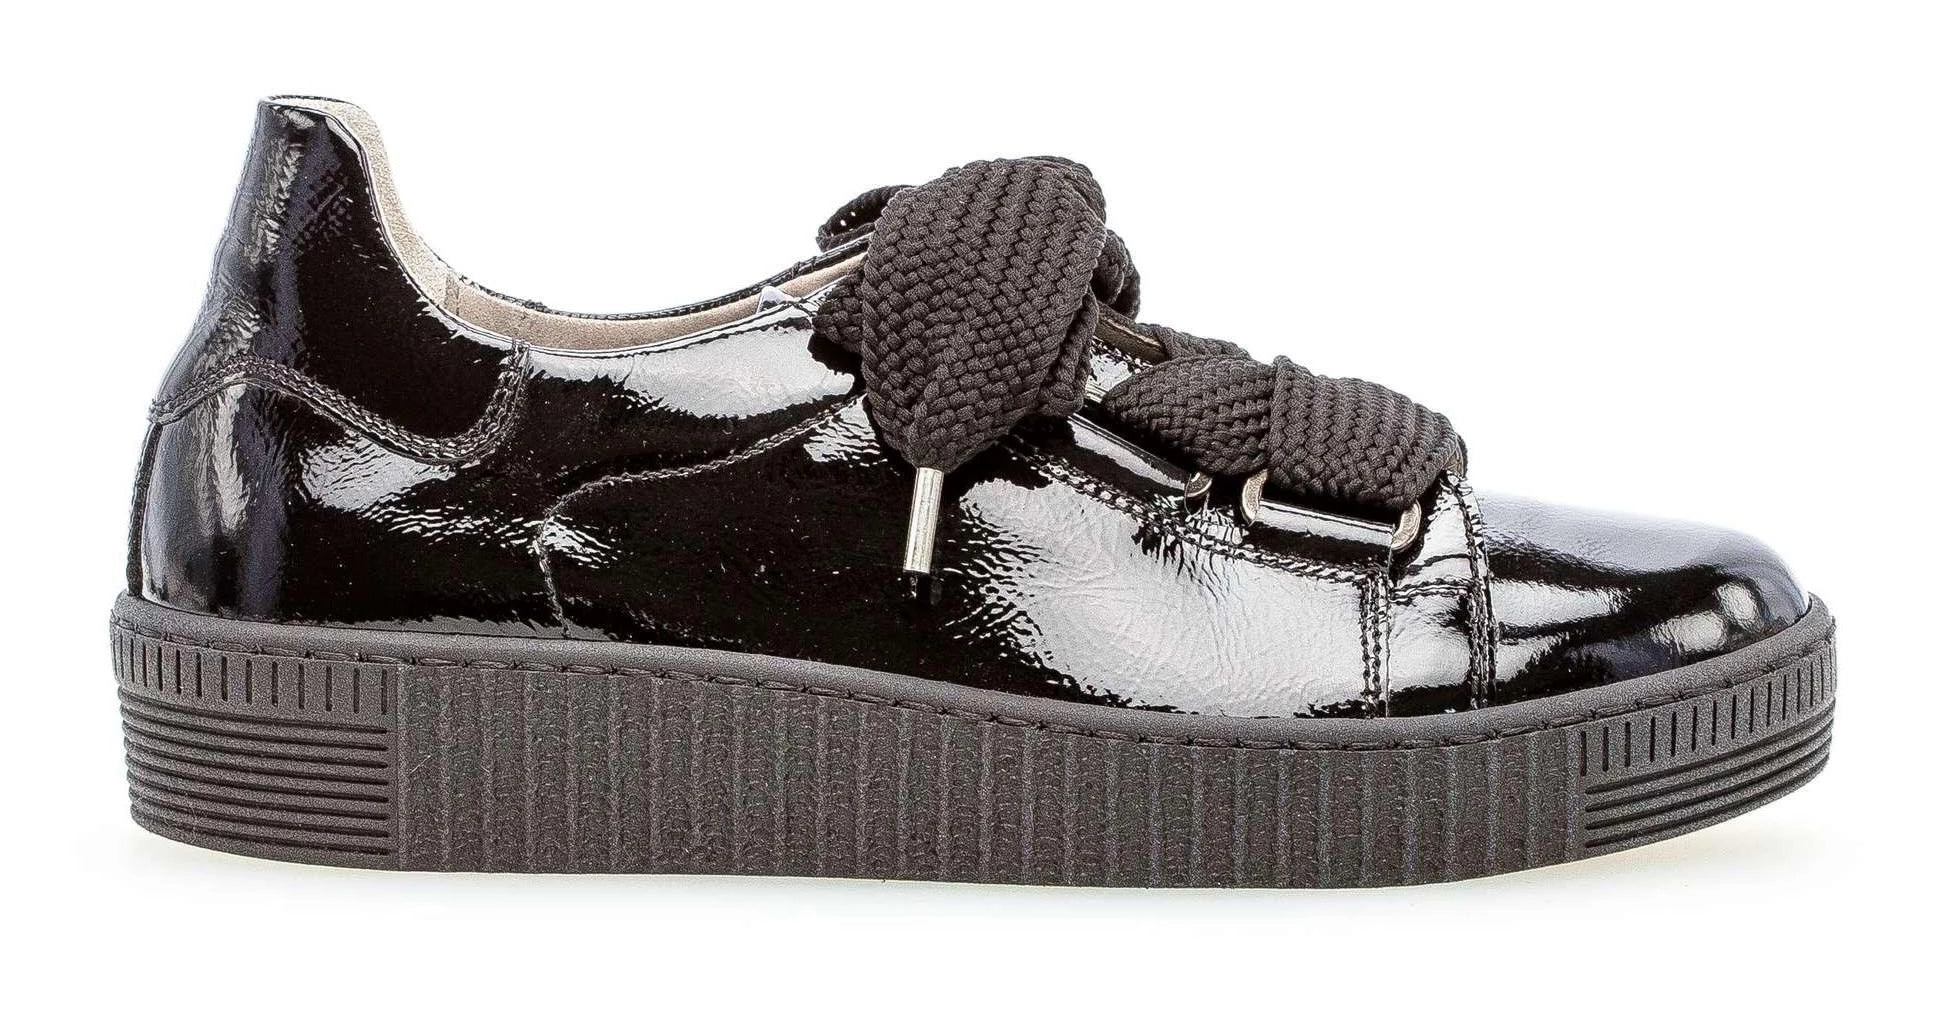 33.330-97 - Sneaker Low Lace Patent Leather Black